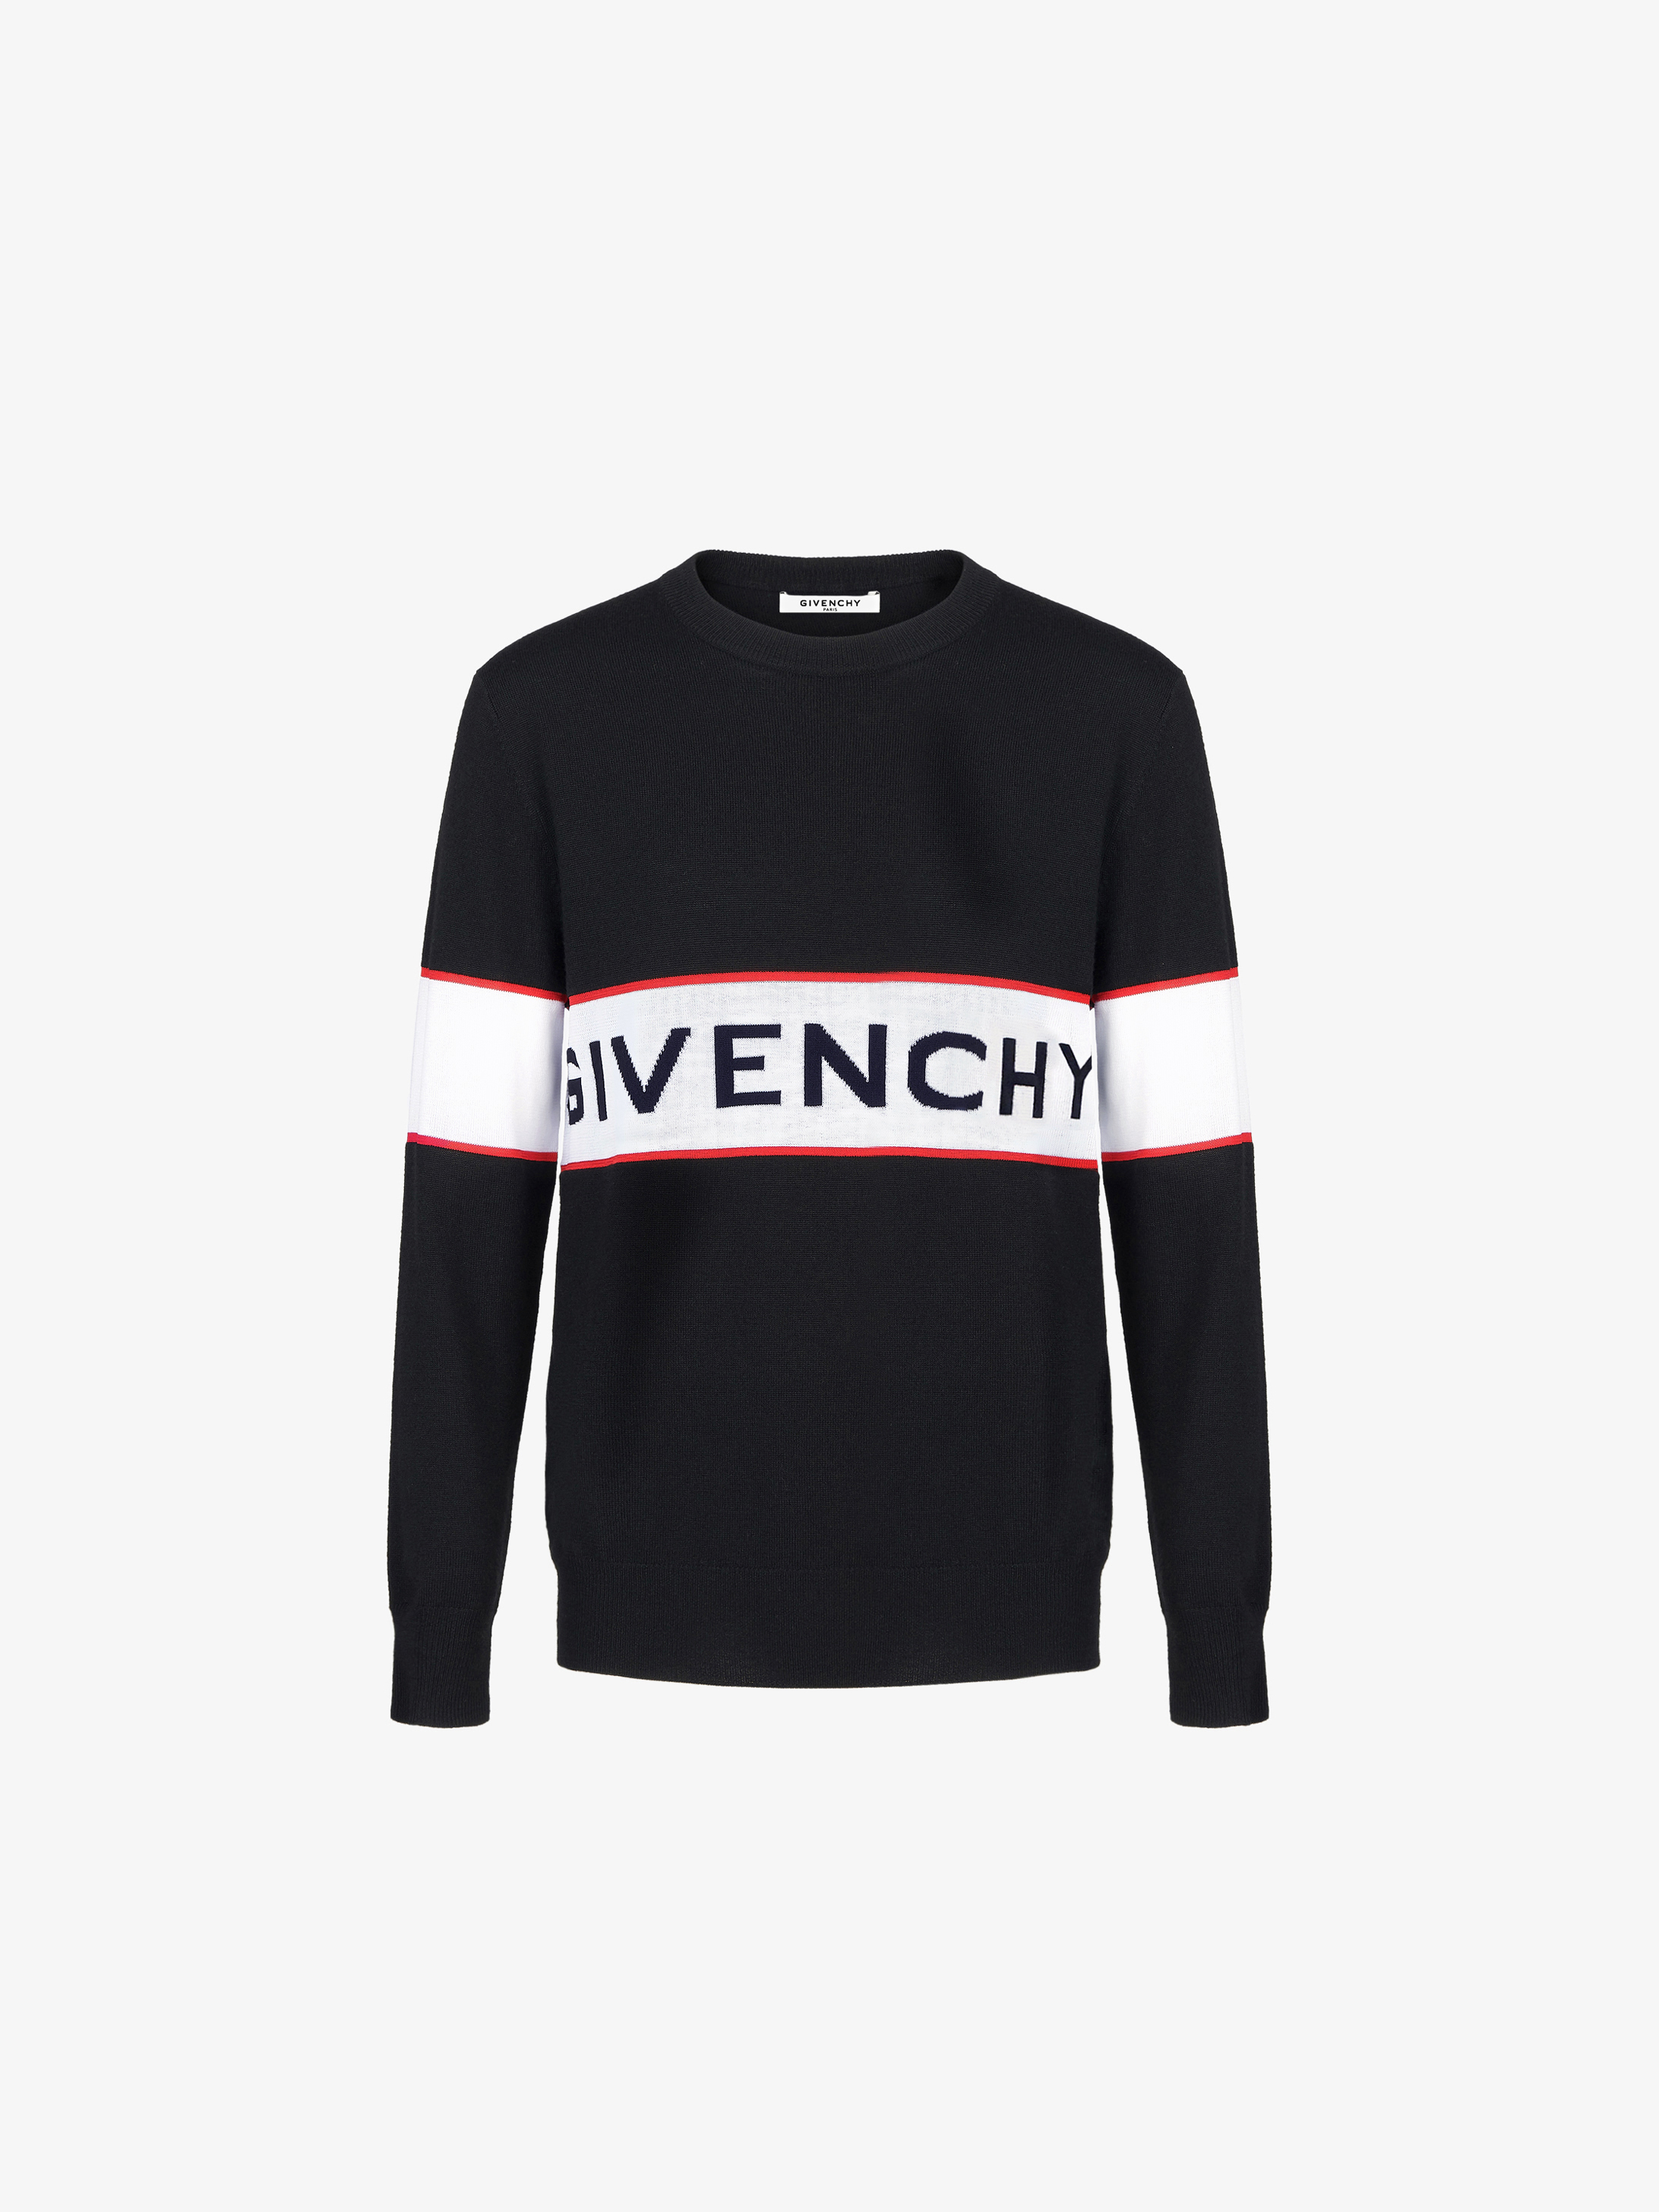 GIVENCHY sweater in wool